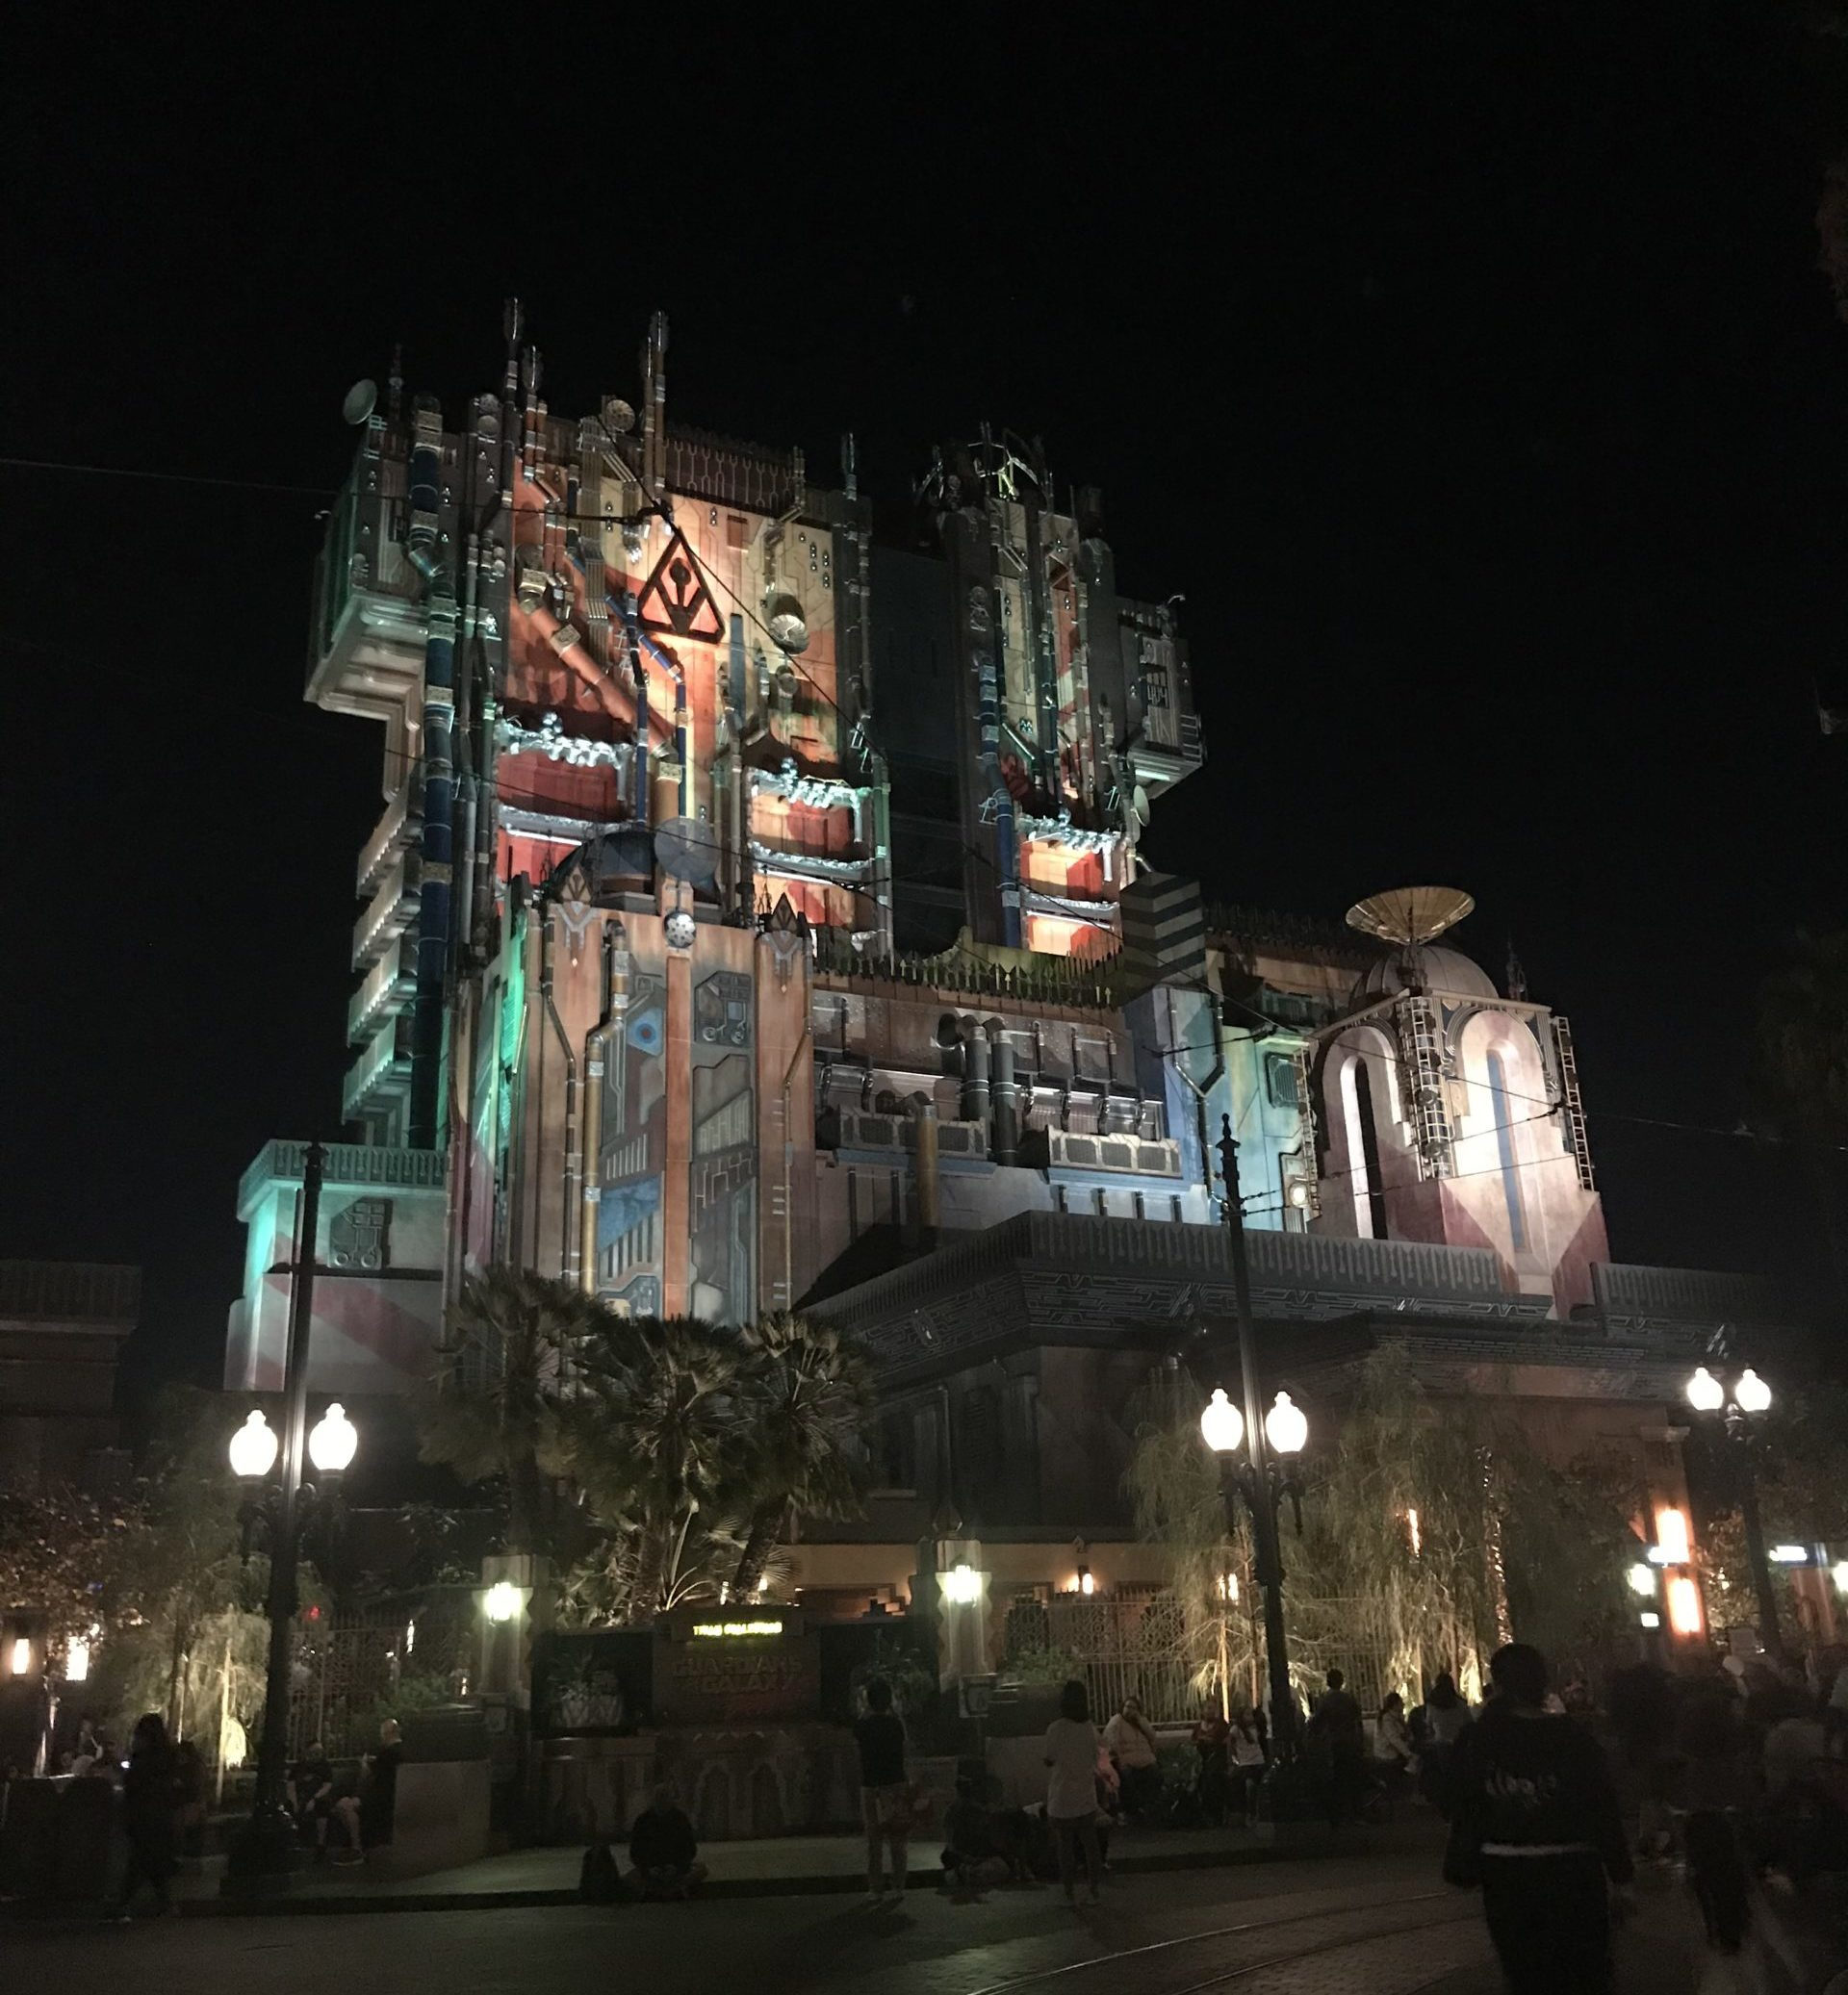 Guardians of the Galaxy - MISSION BREAKOUT!